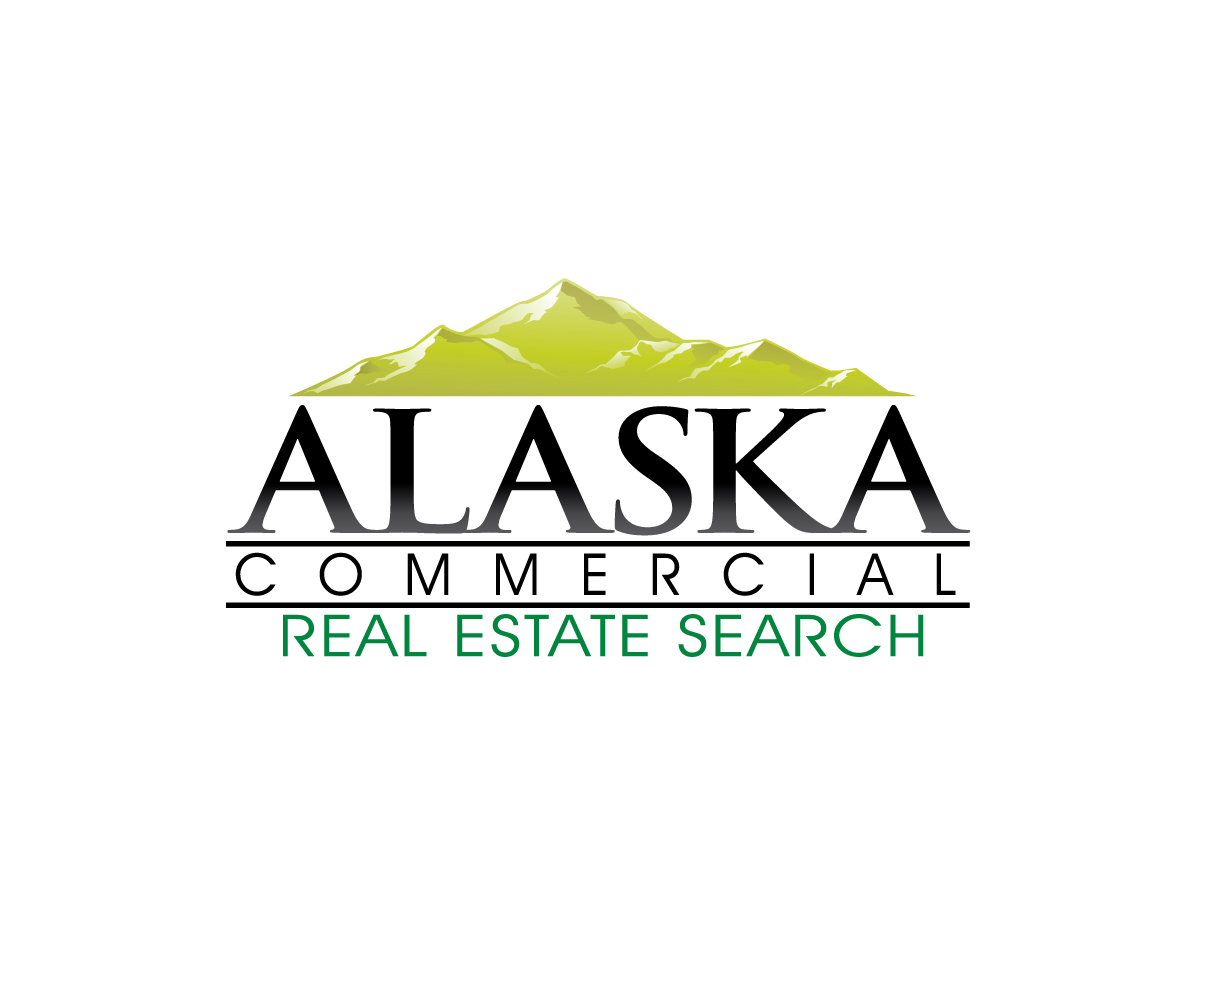 Commercial Property Information : Real estate logo design for alaska commercial